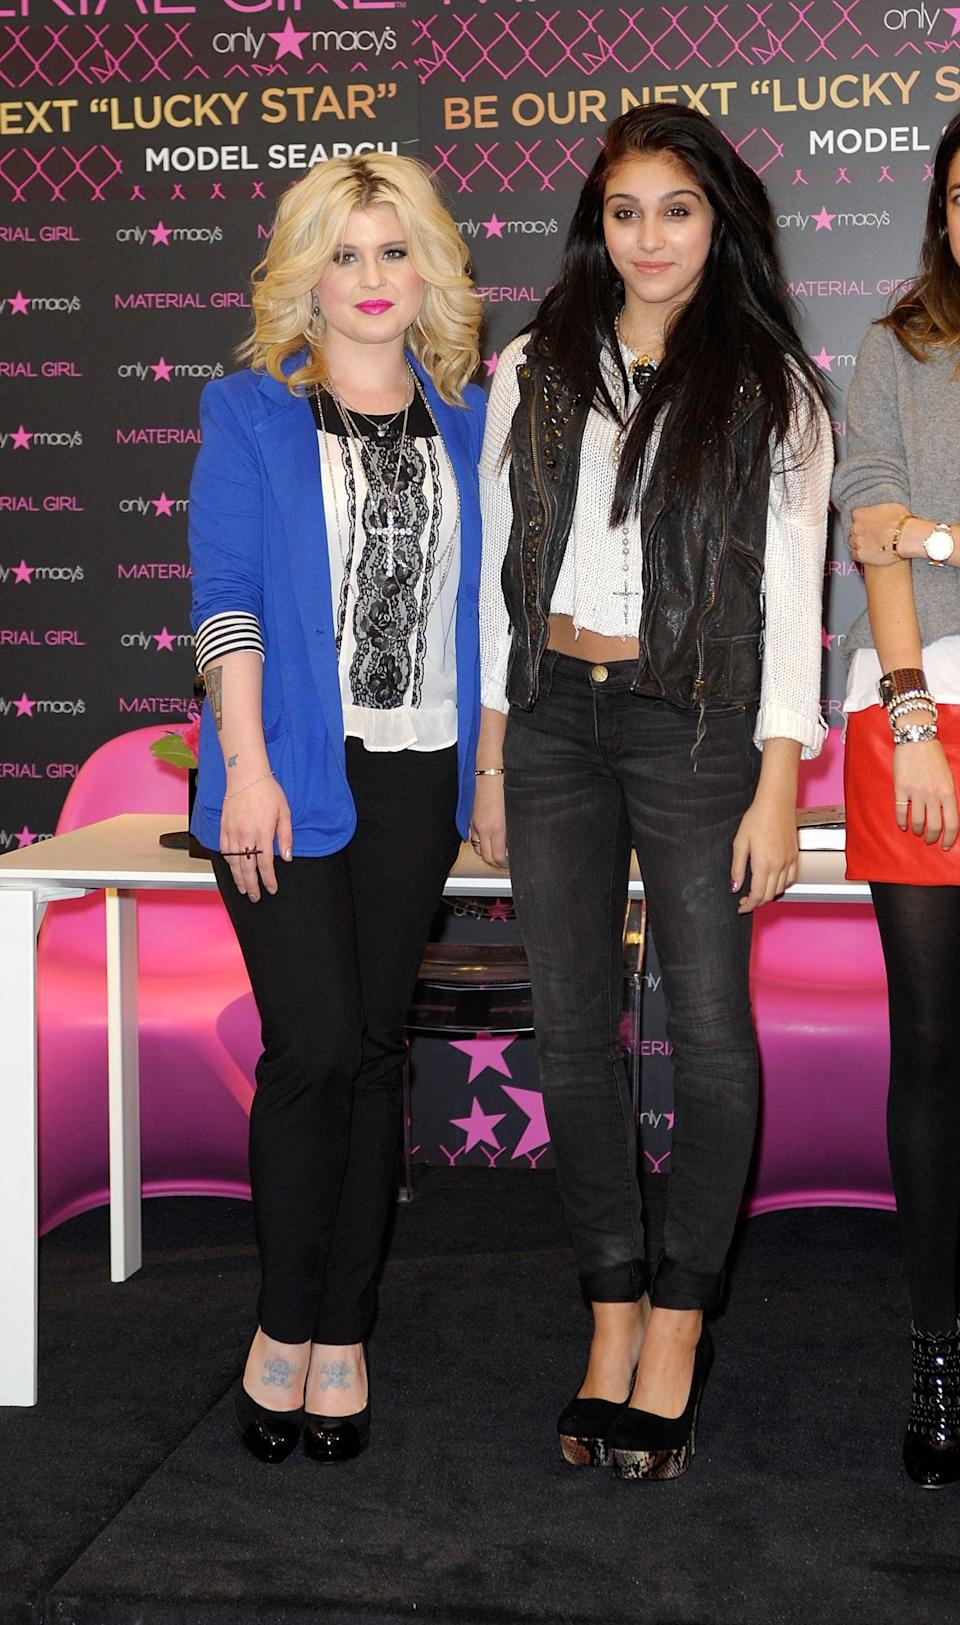 """<p>In Material Girl with Kelly Osbourne at the Material Girl """"Lucky Stars"""" casting call at Macy's Herald Square in New York City in 2011.</p>"""